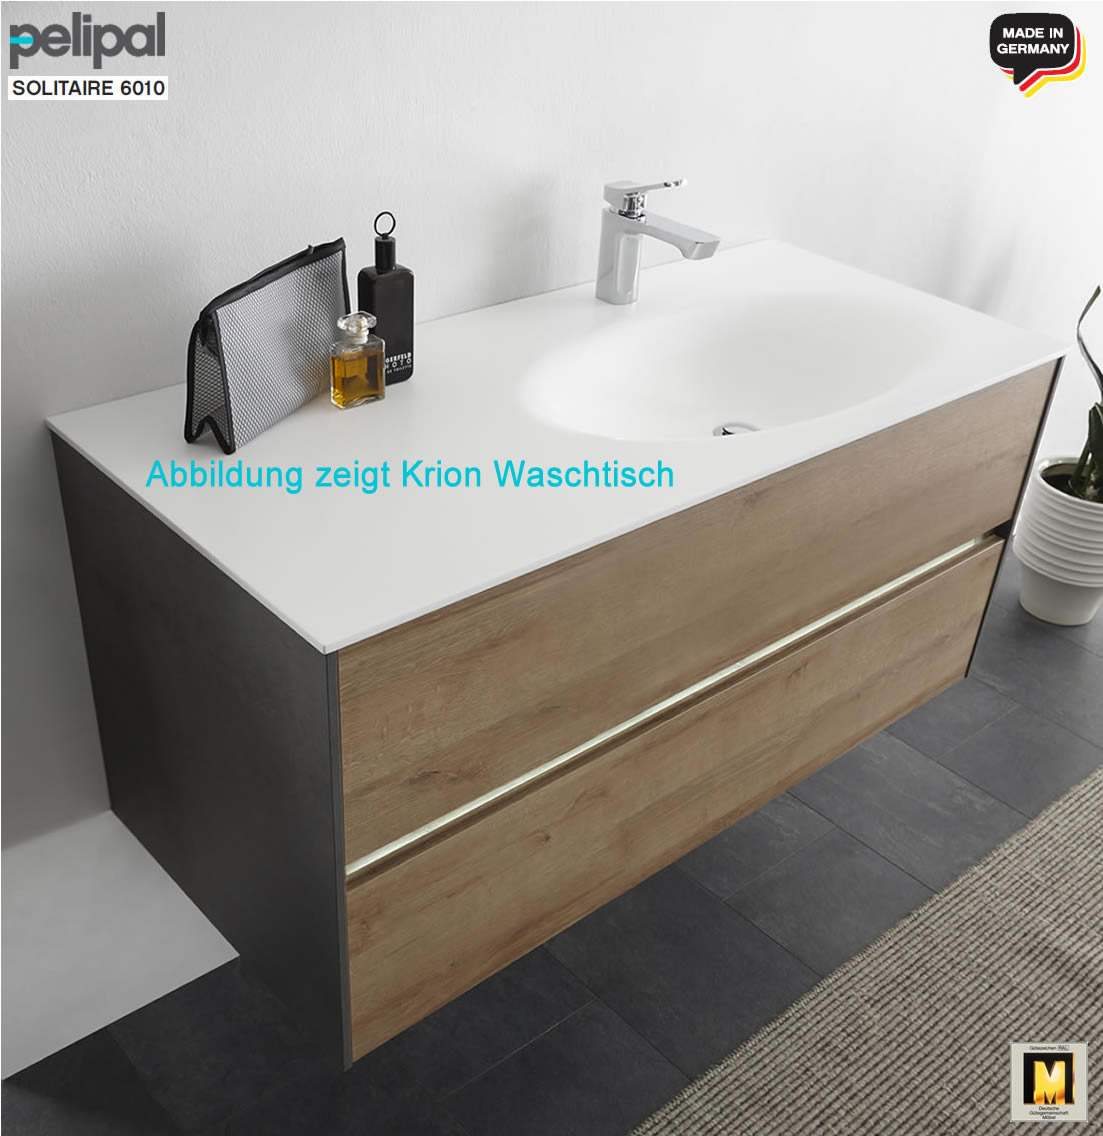 pelipal solitaire 6010 waschtisch set mit 113 cm waschtisch r w hlbar und unterschrank led. Black Bedroom Furniture Sets. Home Design Ideas